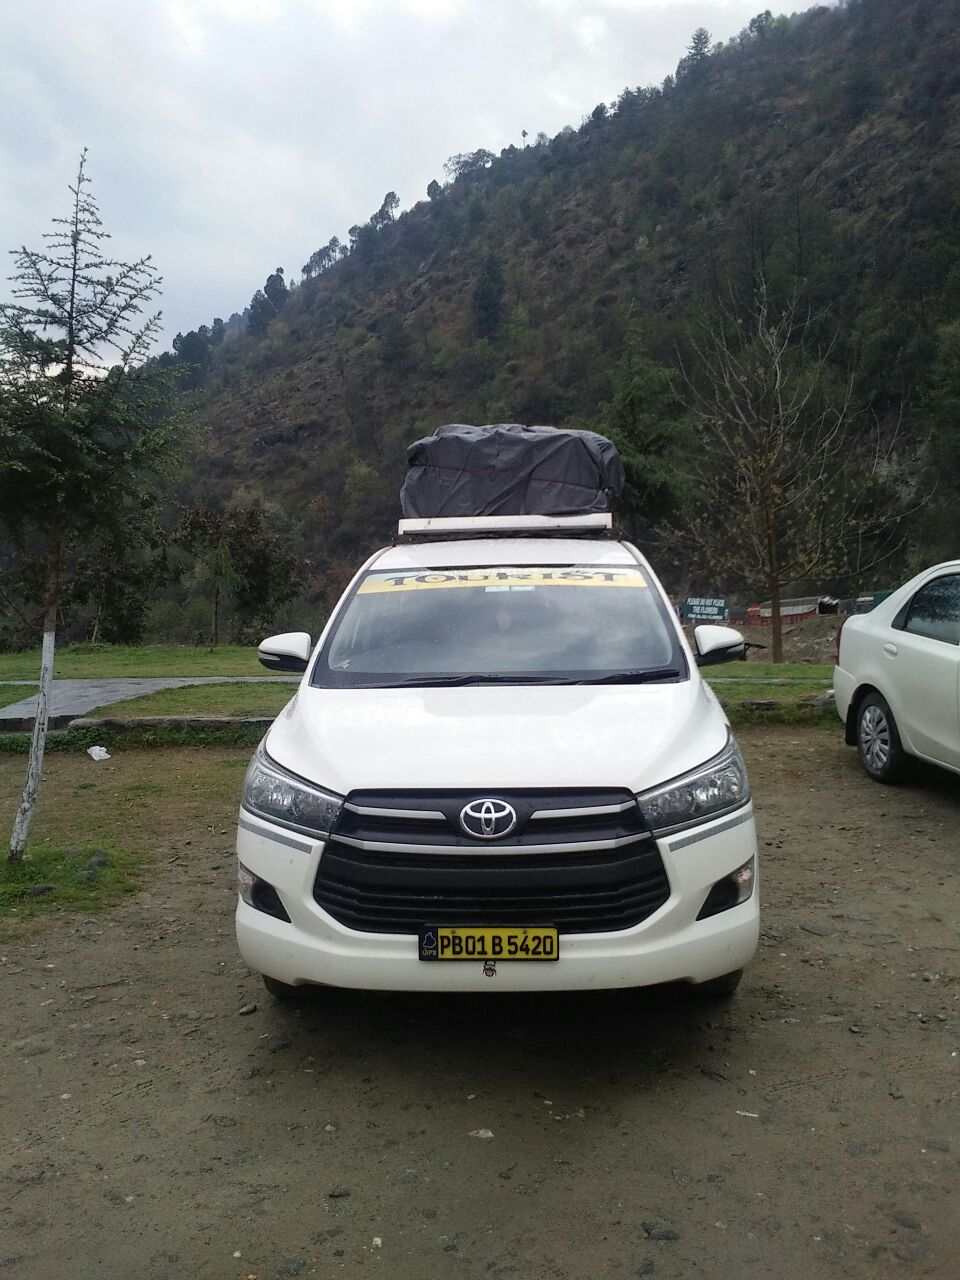 Book Chandigarh to Dharamshala Cabs Oneway & Round Trip Book Chandigarh to Dharamshala Cabs Oneway & Round Trip Crysta Cabs For Dharamshala Tours Book Crysta Taxi Chandigarh to Dharamshala One way Crysta Taxi Chandigarh to Dharamshala Toyota Crysta Taxi Fare